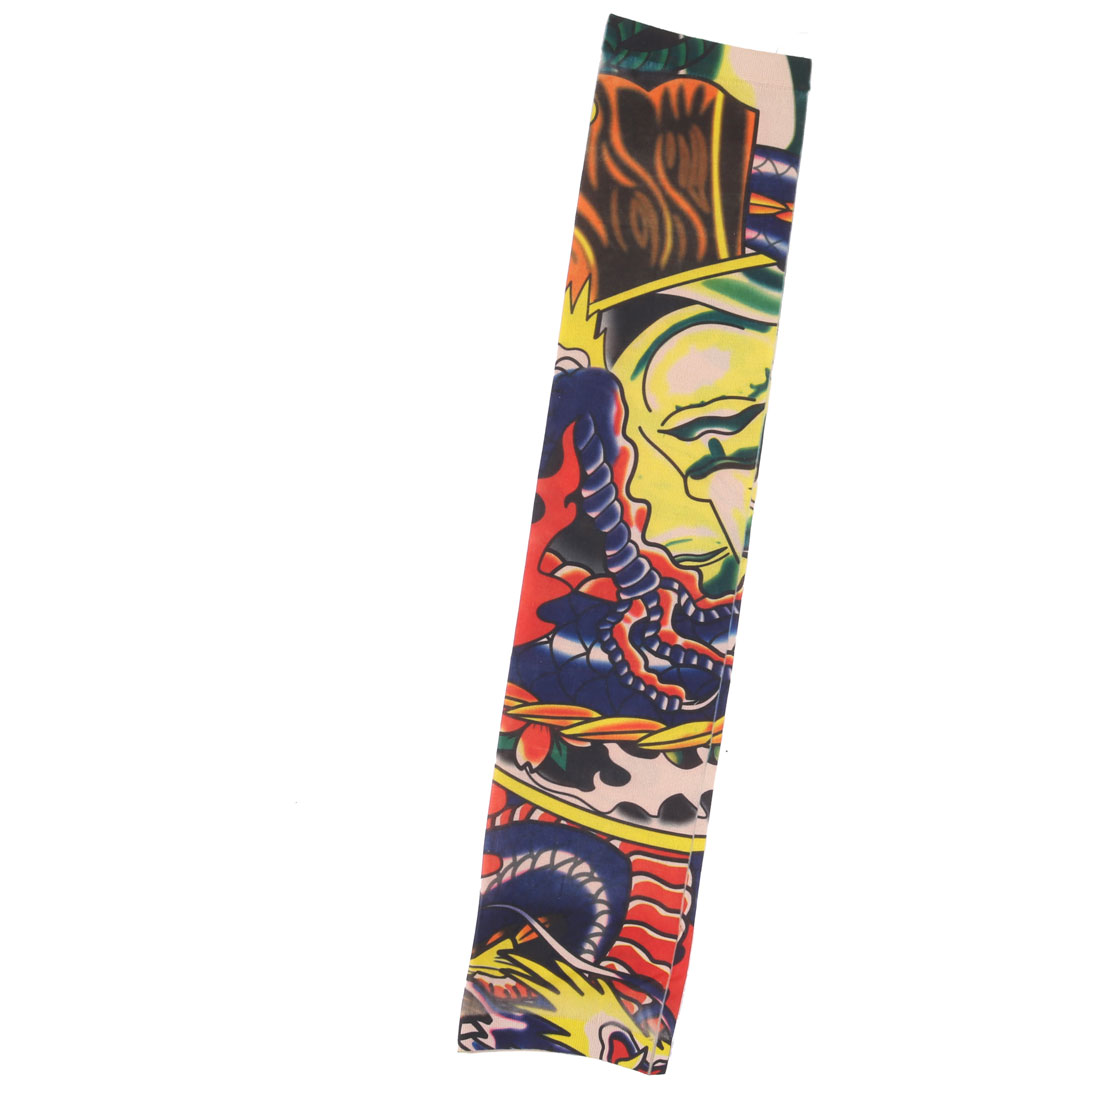 Unique Bargains Outdoor Nylon Cow Pattern Elastic Stretch Sport Arm Protector Sleeve Oversleeve - image 4 of 4